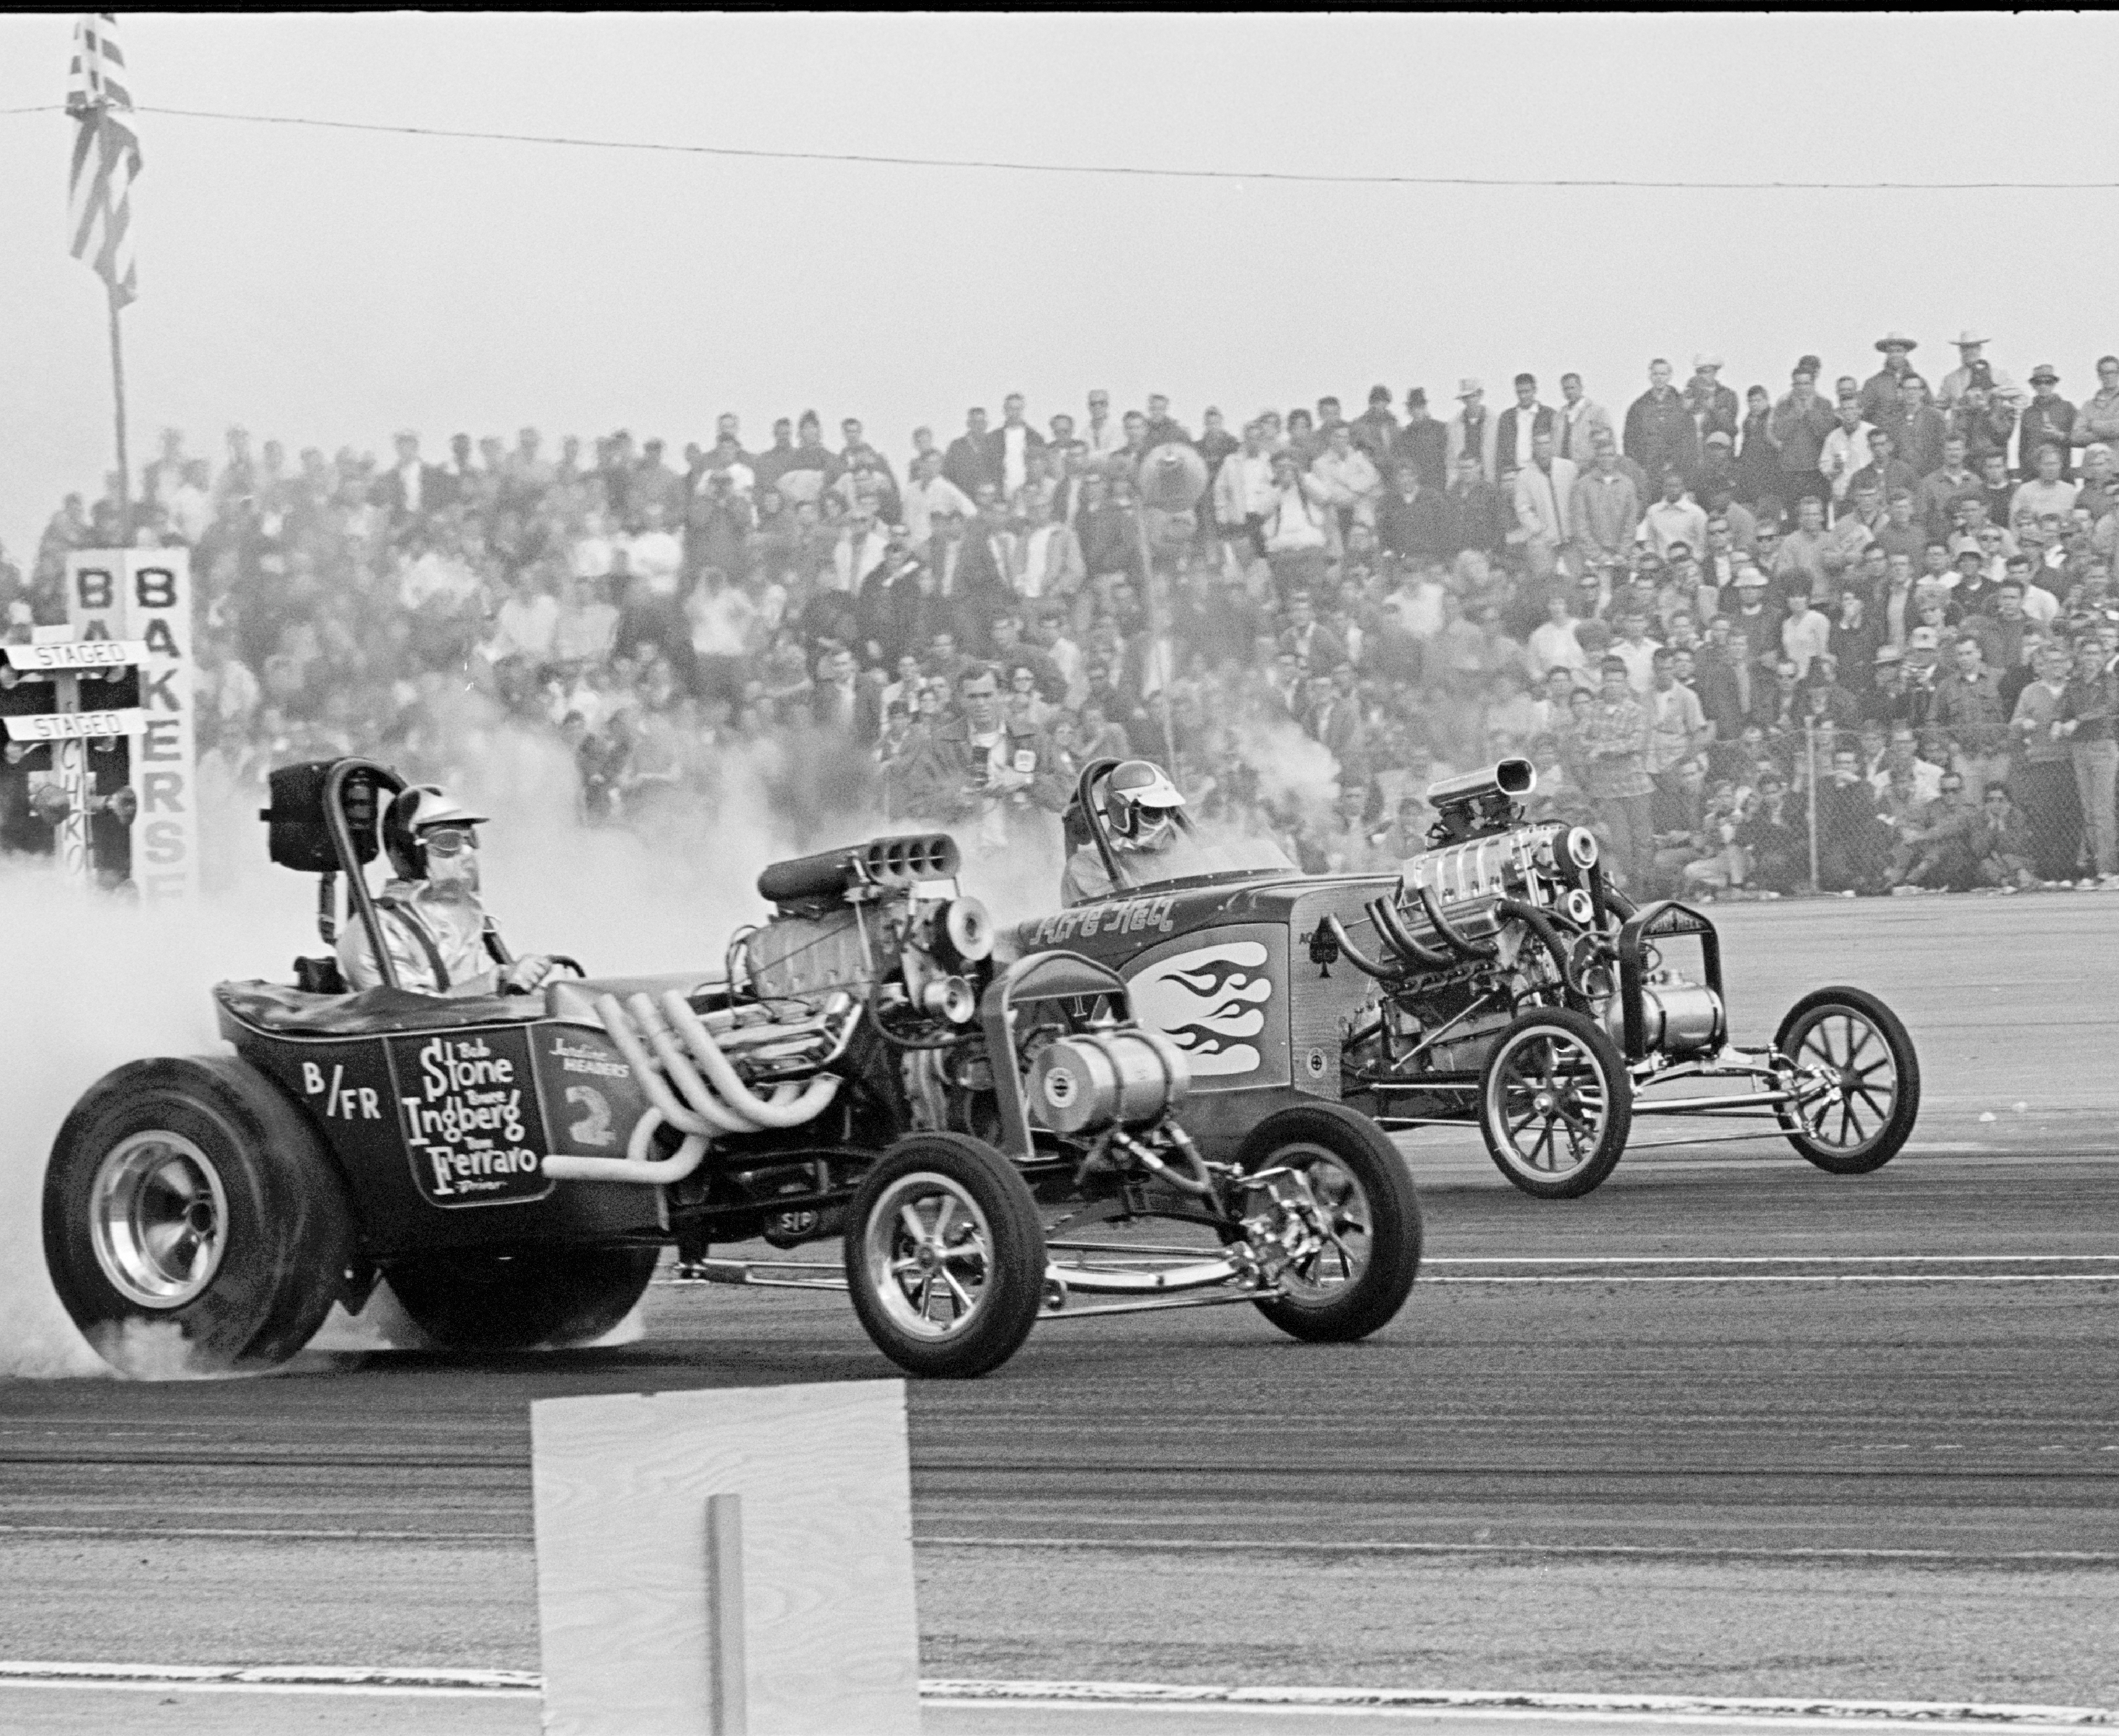 "Despite a controversial, unpopular takeover by Eastern promoters Gil Kohn and Ed Eaton, Bakersfield's U.S. Fuel and Gas Championships remained the sport's most important ""hot-car"" meet. Hot rods of 1965 didn't come any hotter than fuel altereds. A huge upset saw Tom Ferraro's 9.36 hold off Dale Emery in Rich Guasco's 8-second Pure Hell en route to the Blown Altered/Fuel Roadster victory."